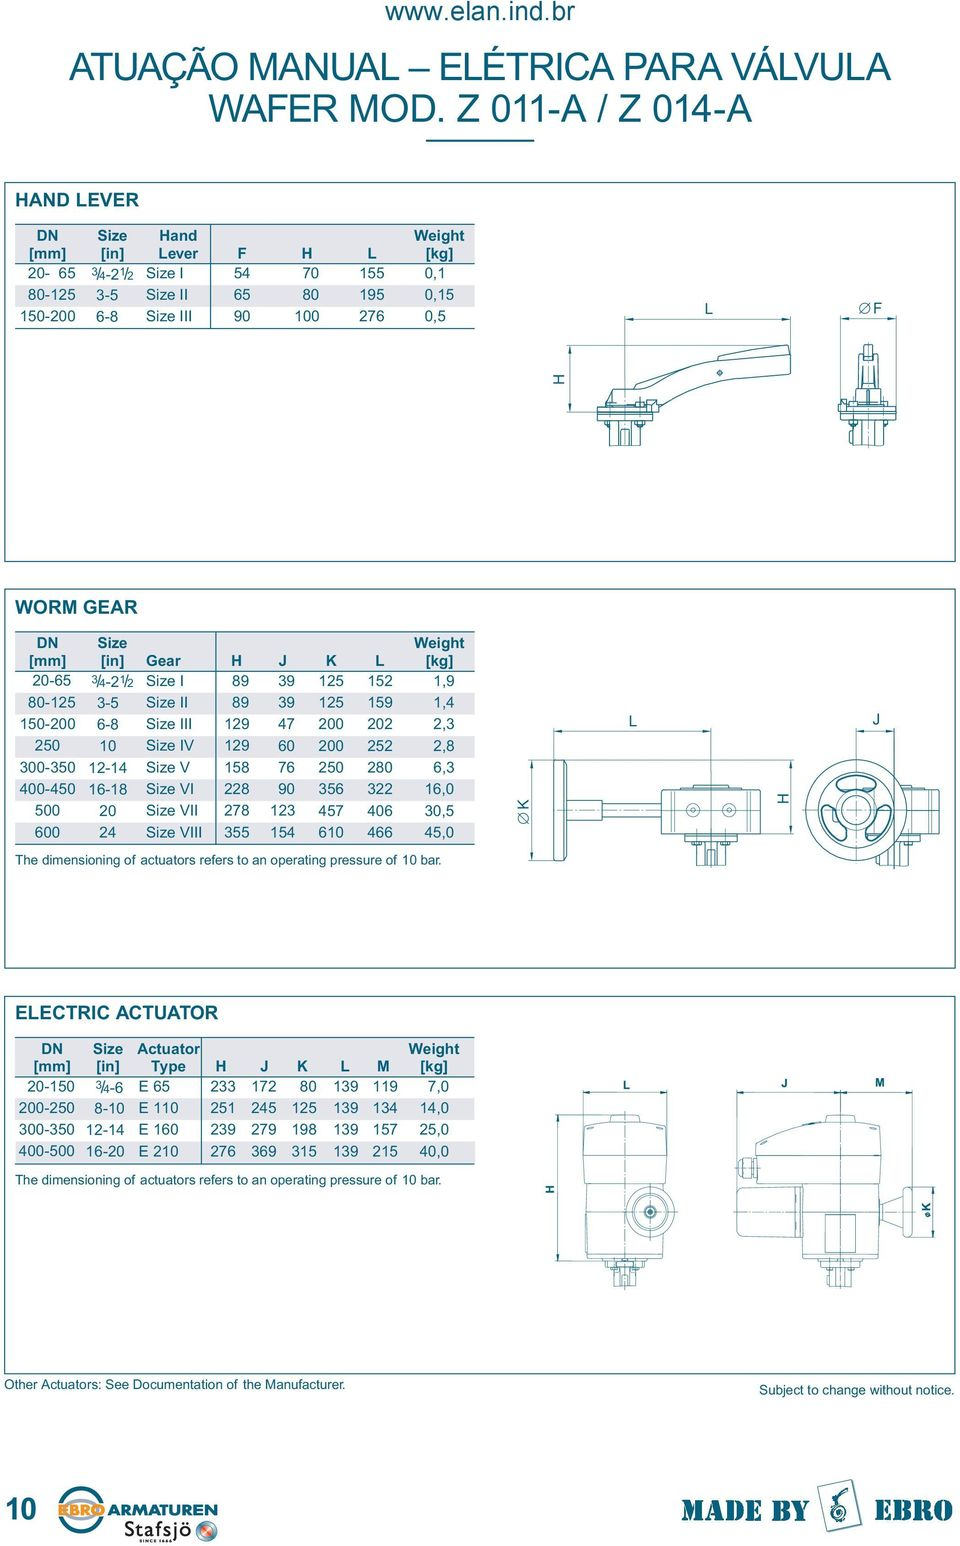 V 00-0 - VI 0 00 VII 00 VIII 0,,,,,,0 0,,0 J The dimensioning of actuators refers to an operating pressure of bar.